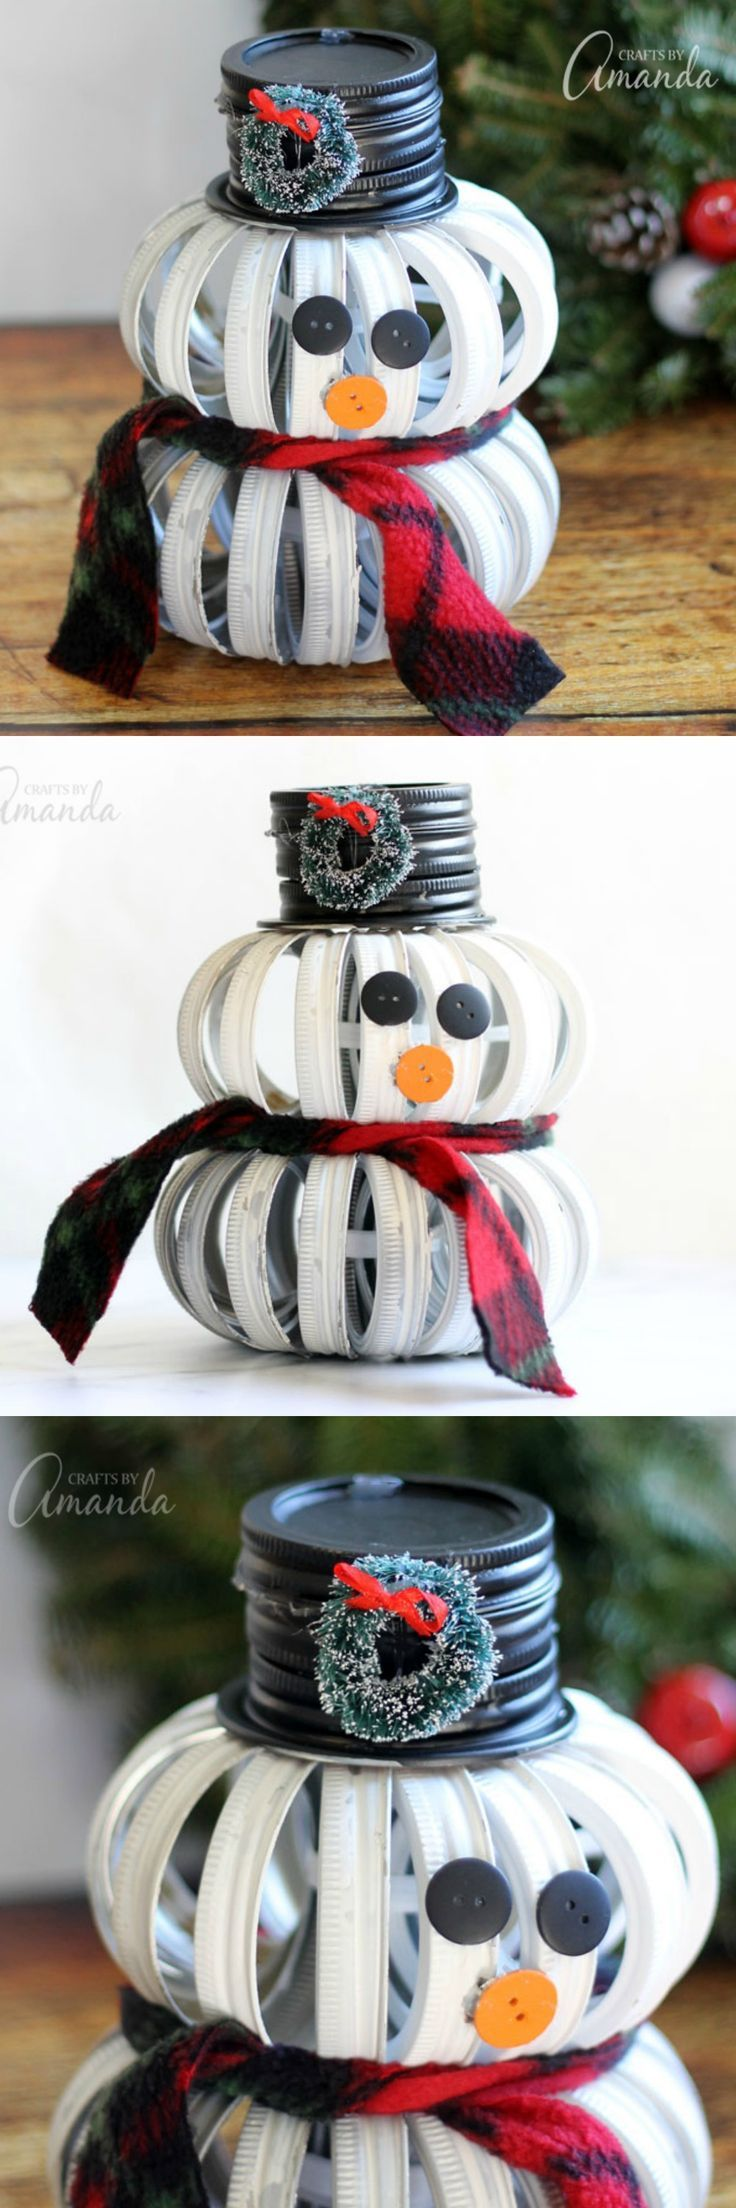 This mason jar lid snowman is an adorable holiday craft! Part rustic, part modern, it's different from any Christmas decor you can buy in a store.